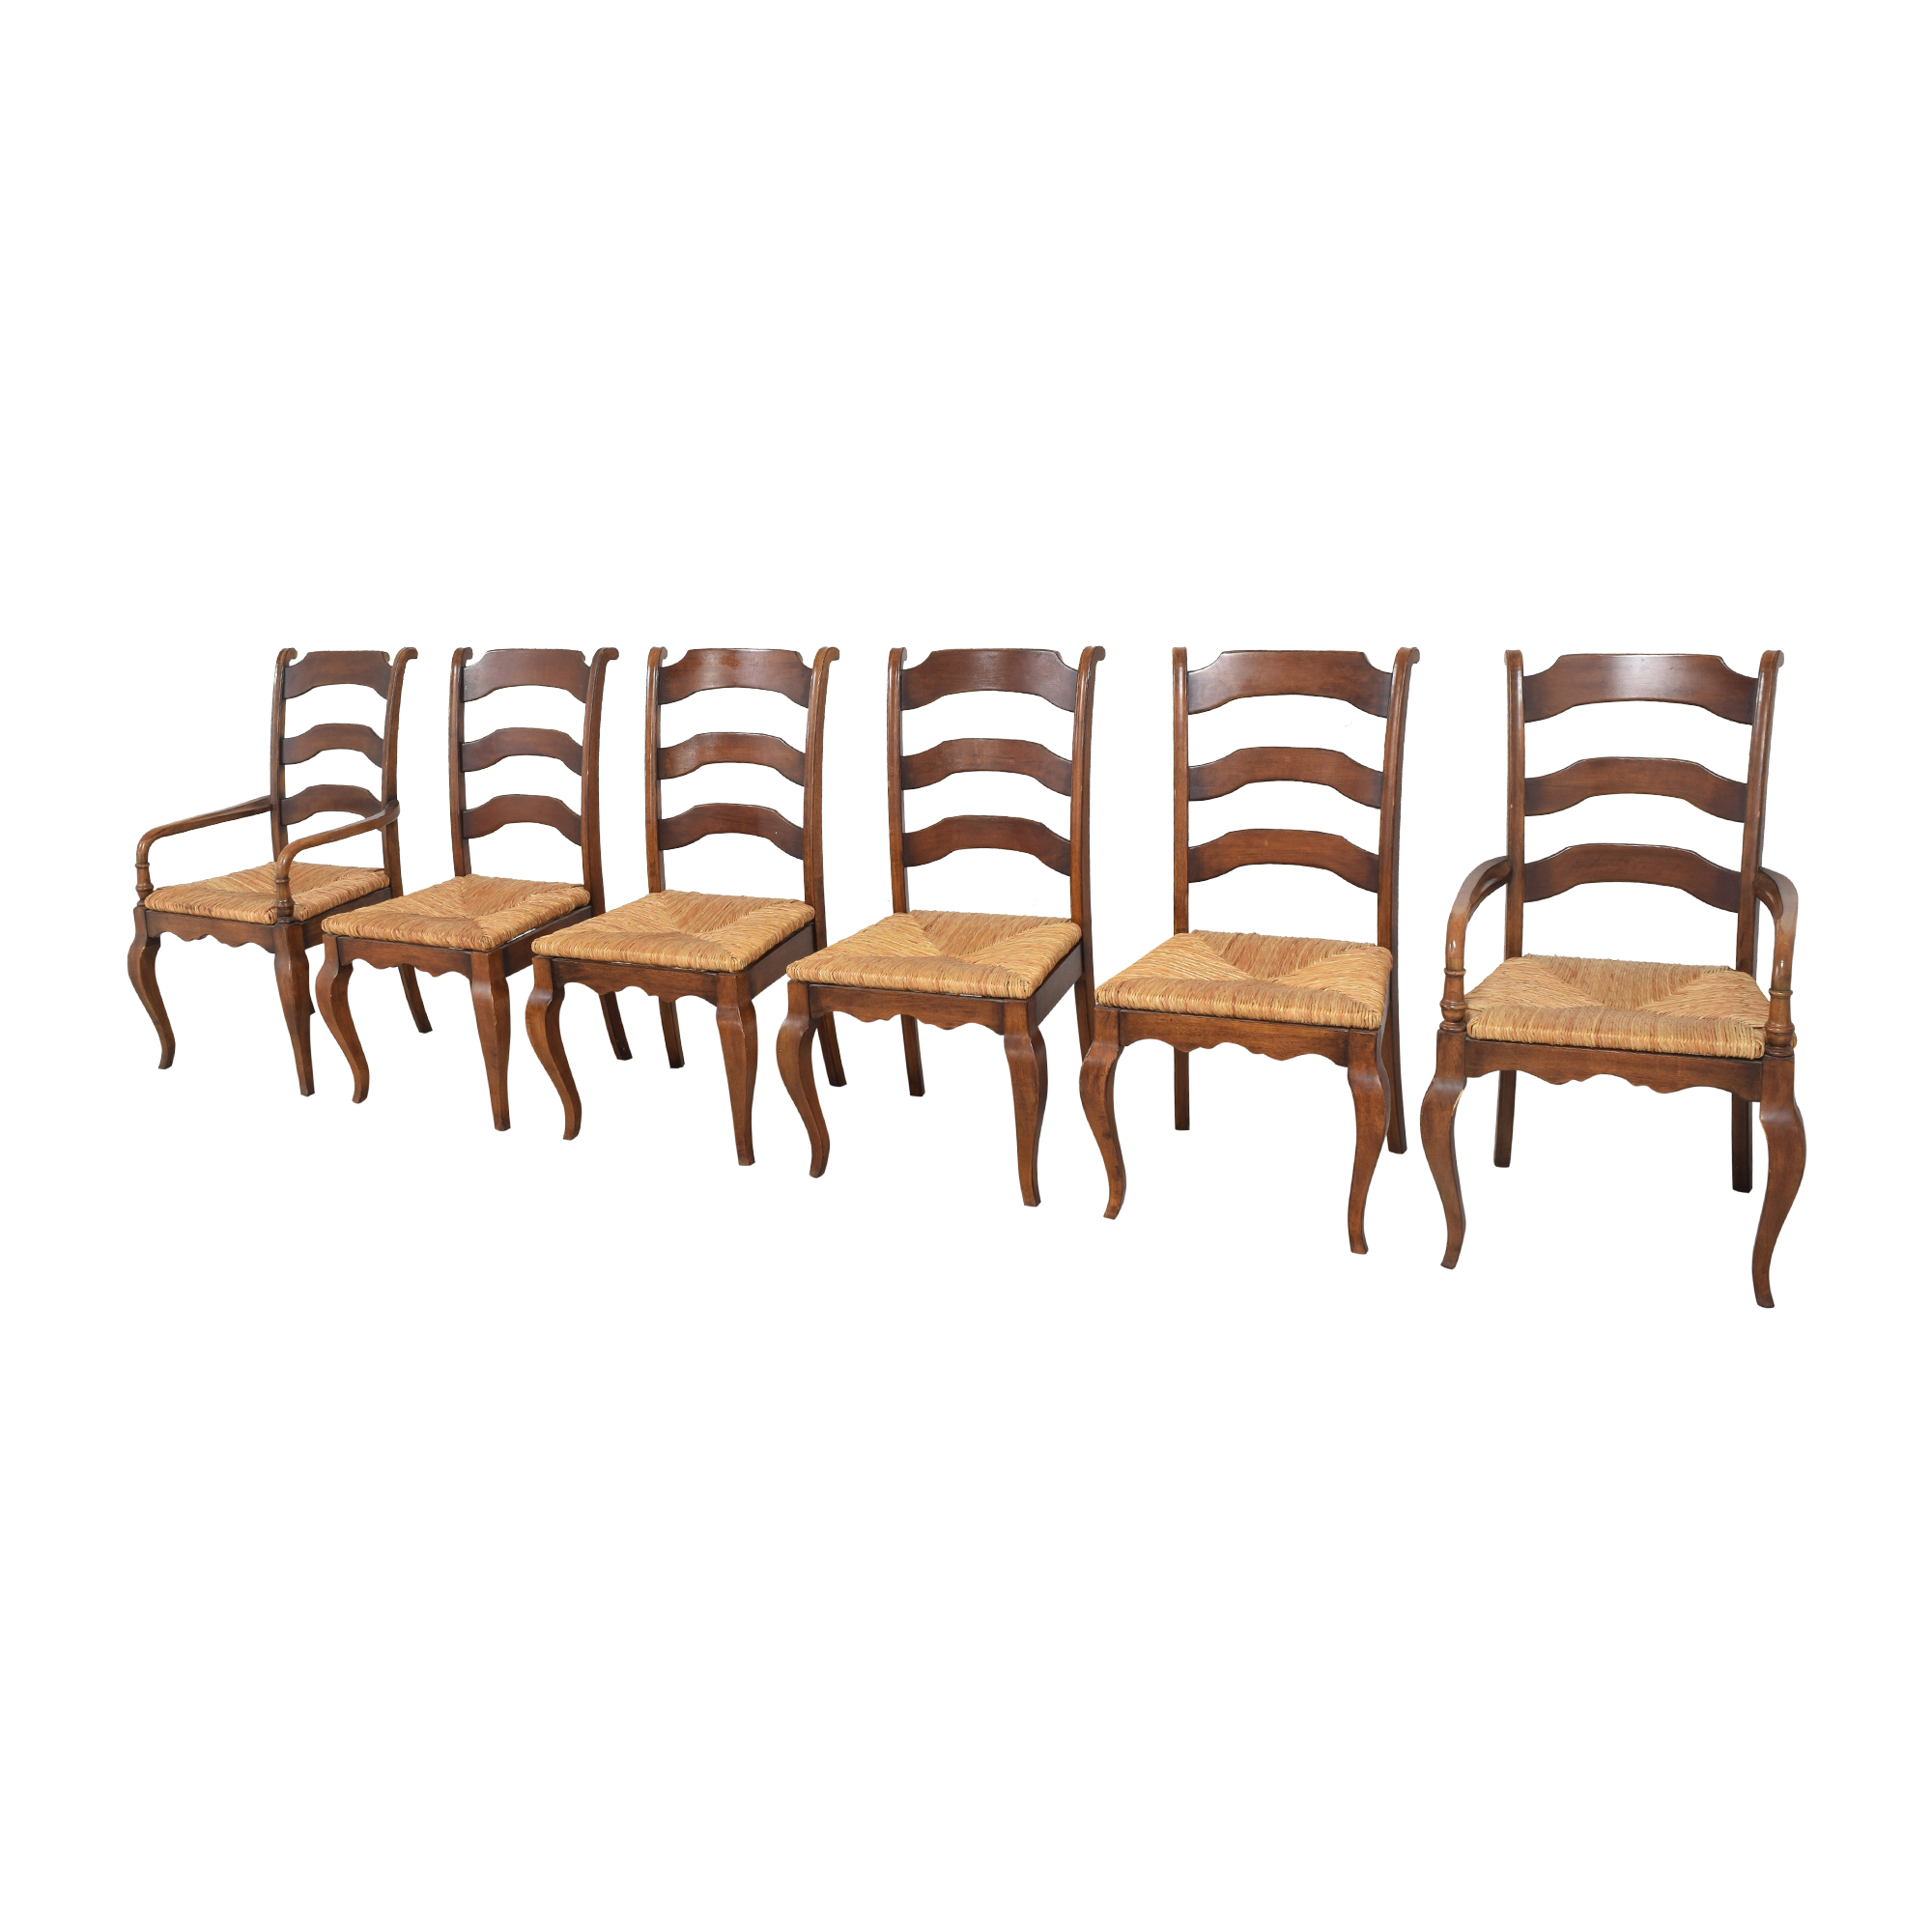 Hooker Furniture Hooker Furniture Woven Seat Dining Chairs ct